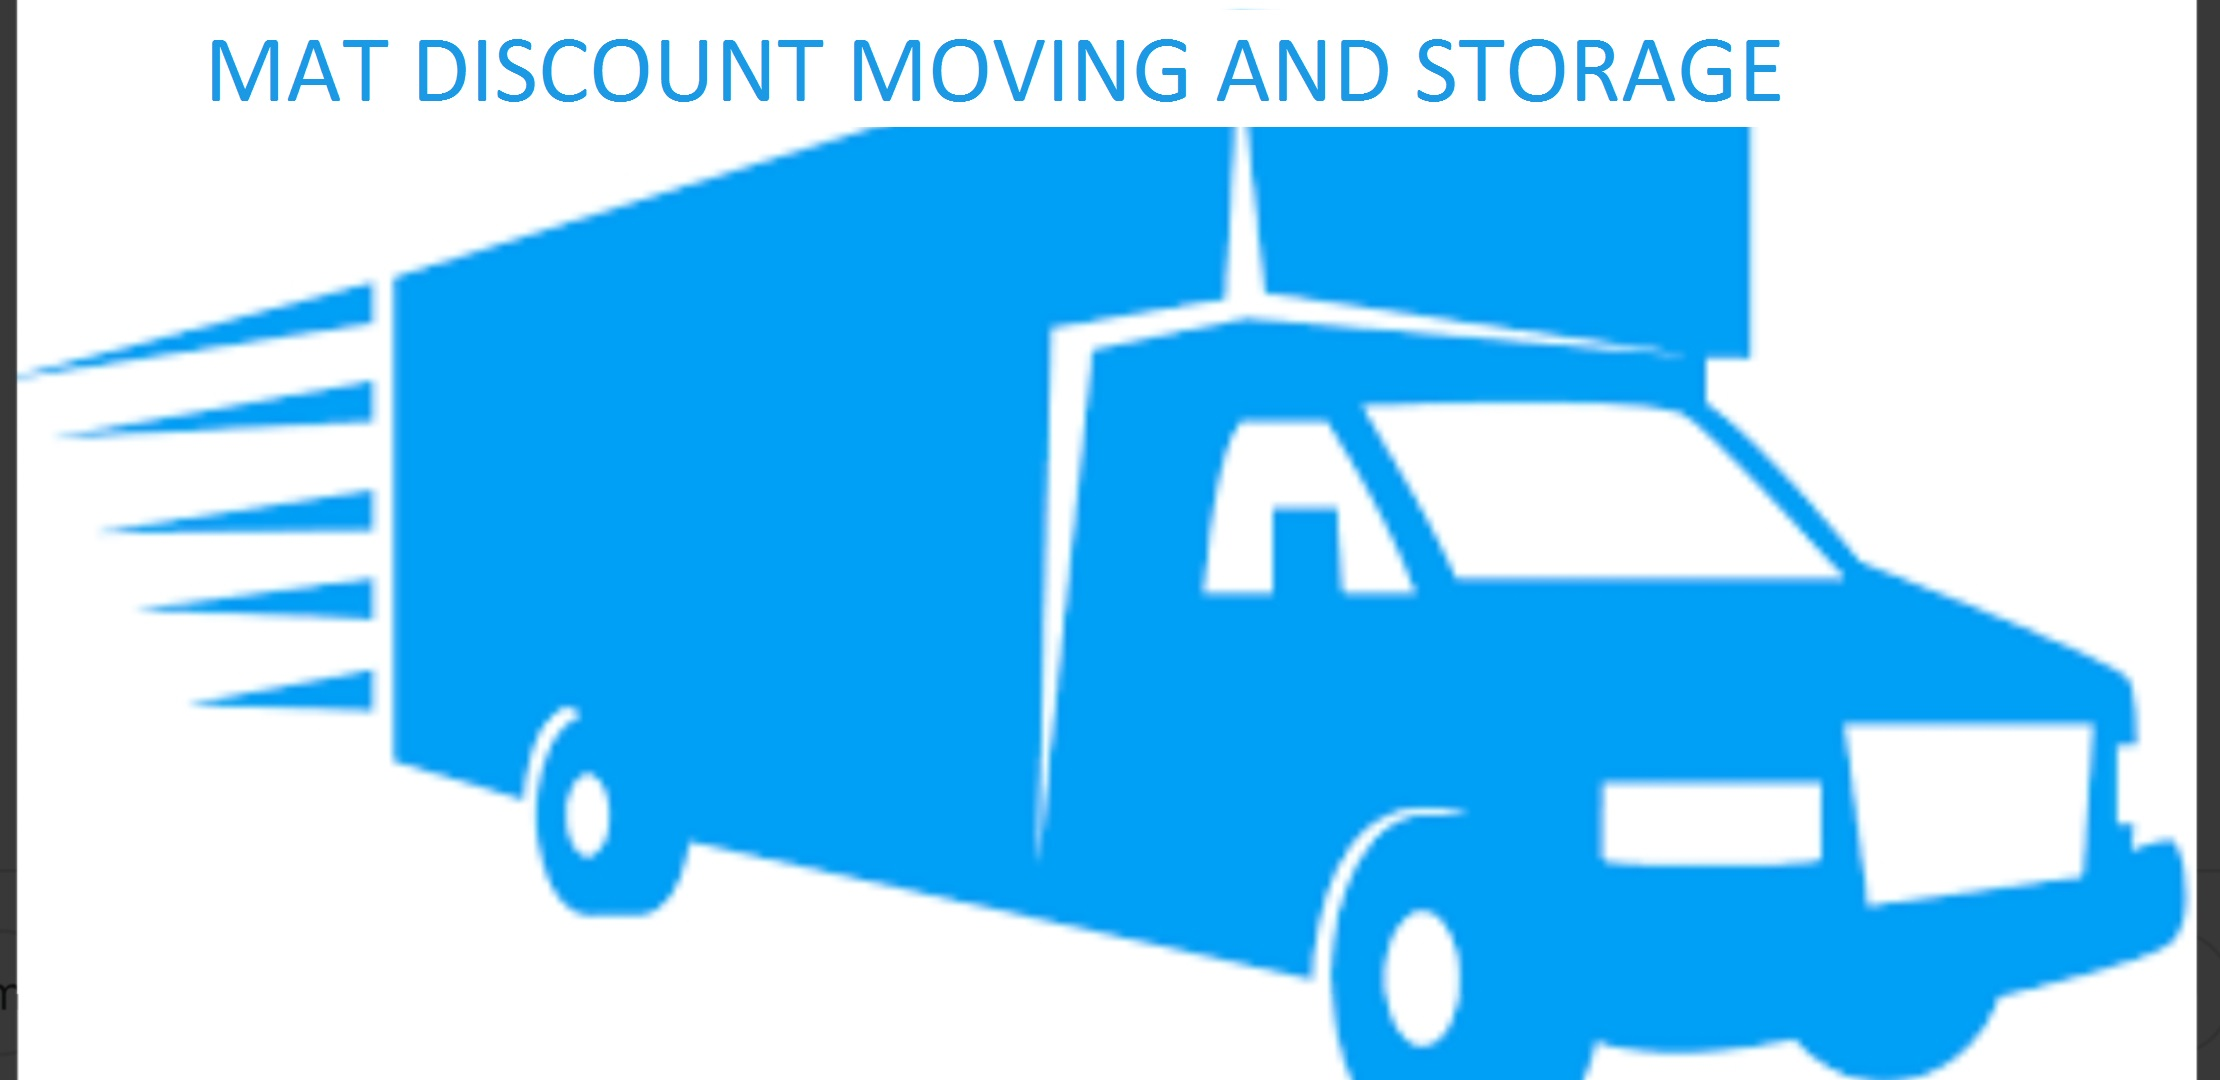 MAT Discount Moving and Storage